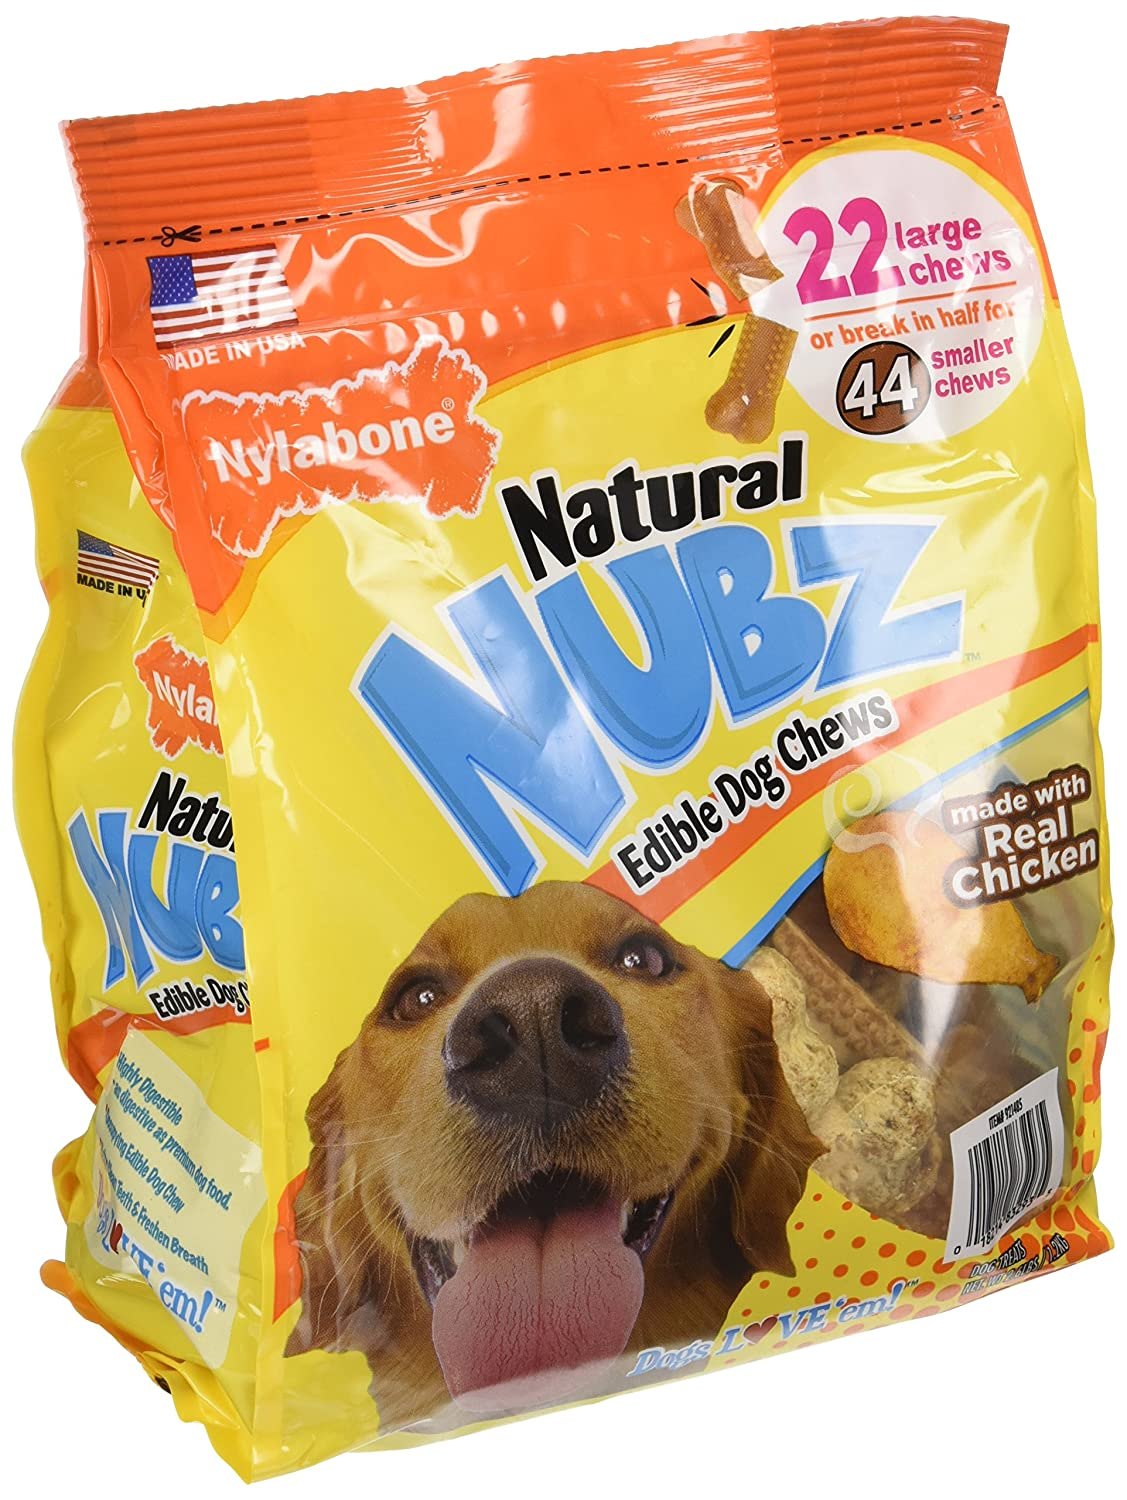 pack of 2 Nylabone Natural Nubz Edible Dog Chews 22ct. 2.6lb bag -Total 5.2lb